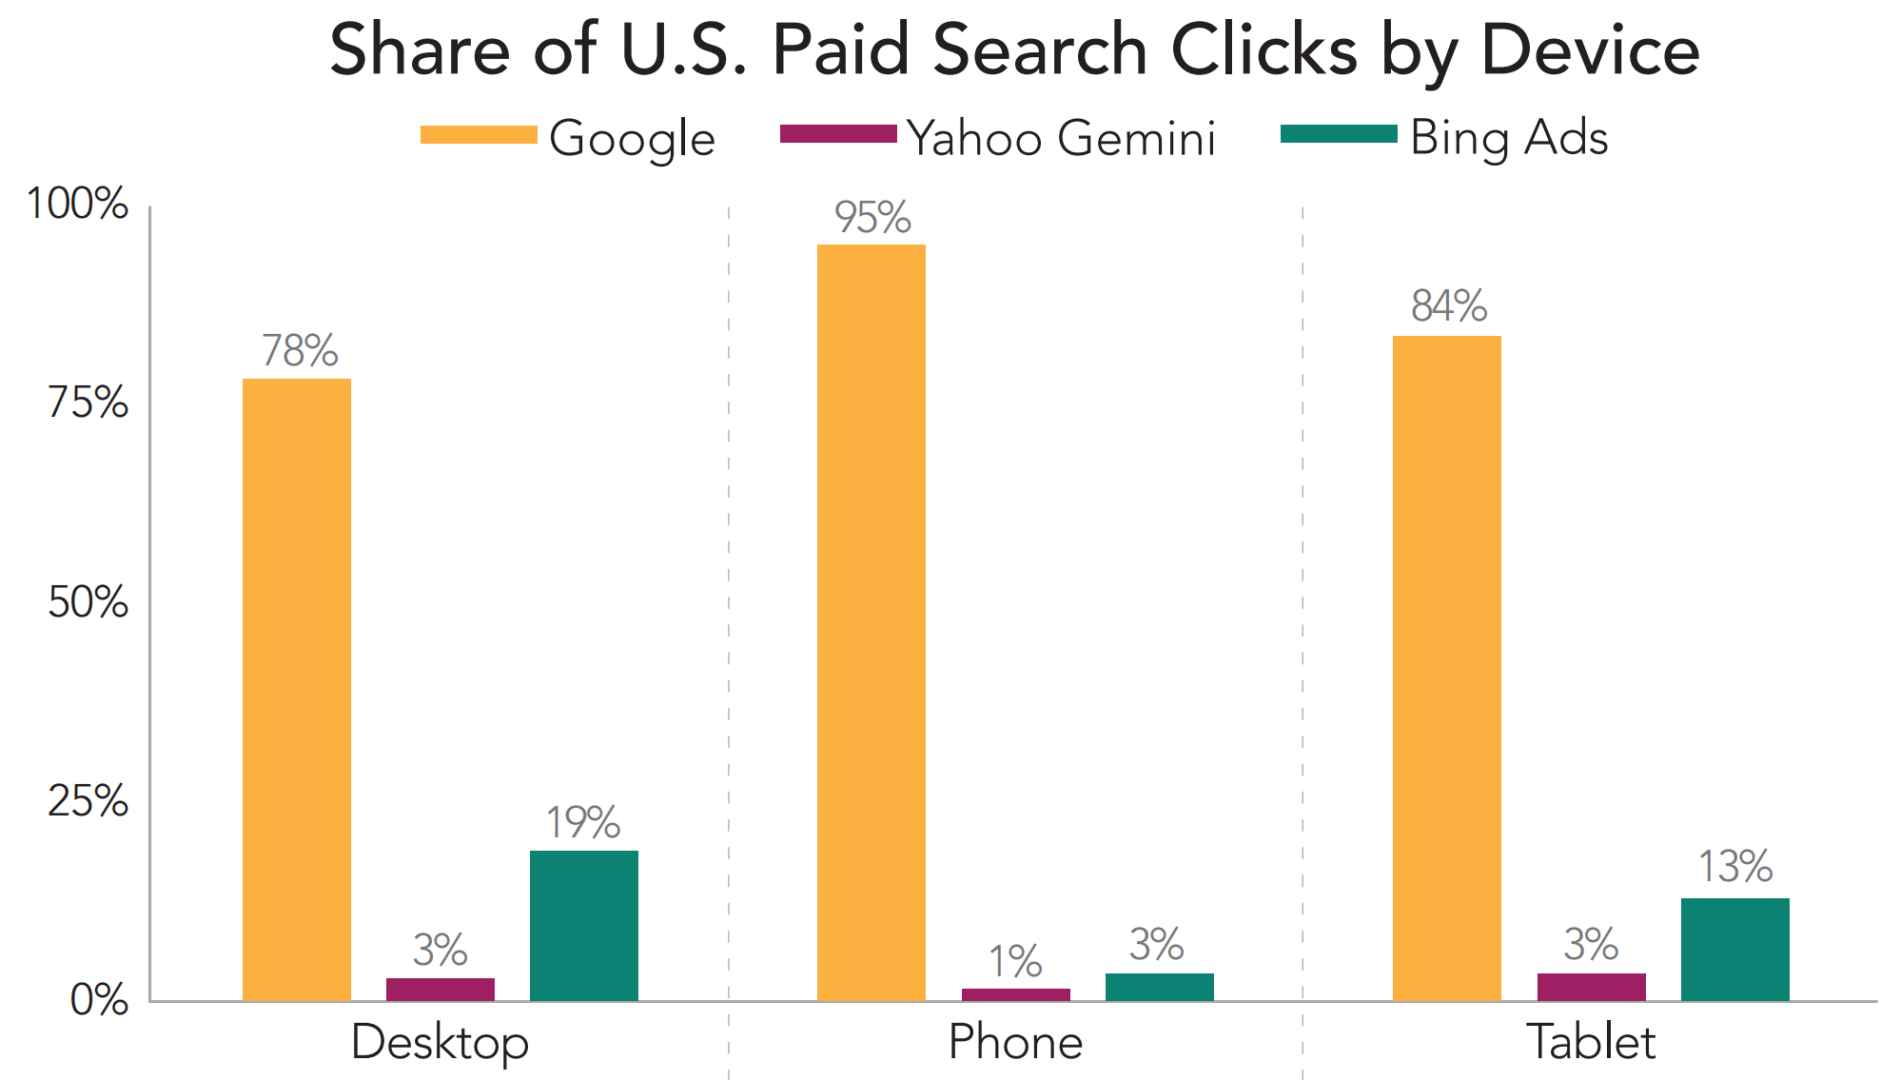 Share of paid search clicks by device graph